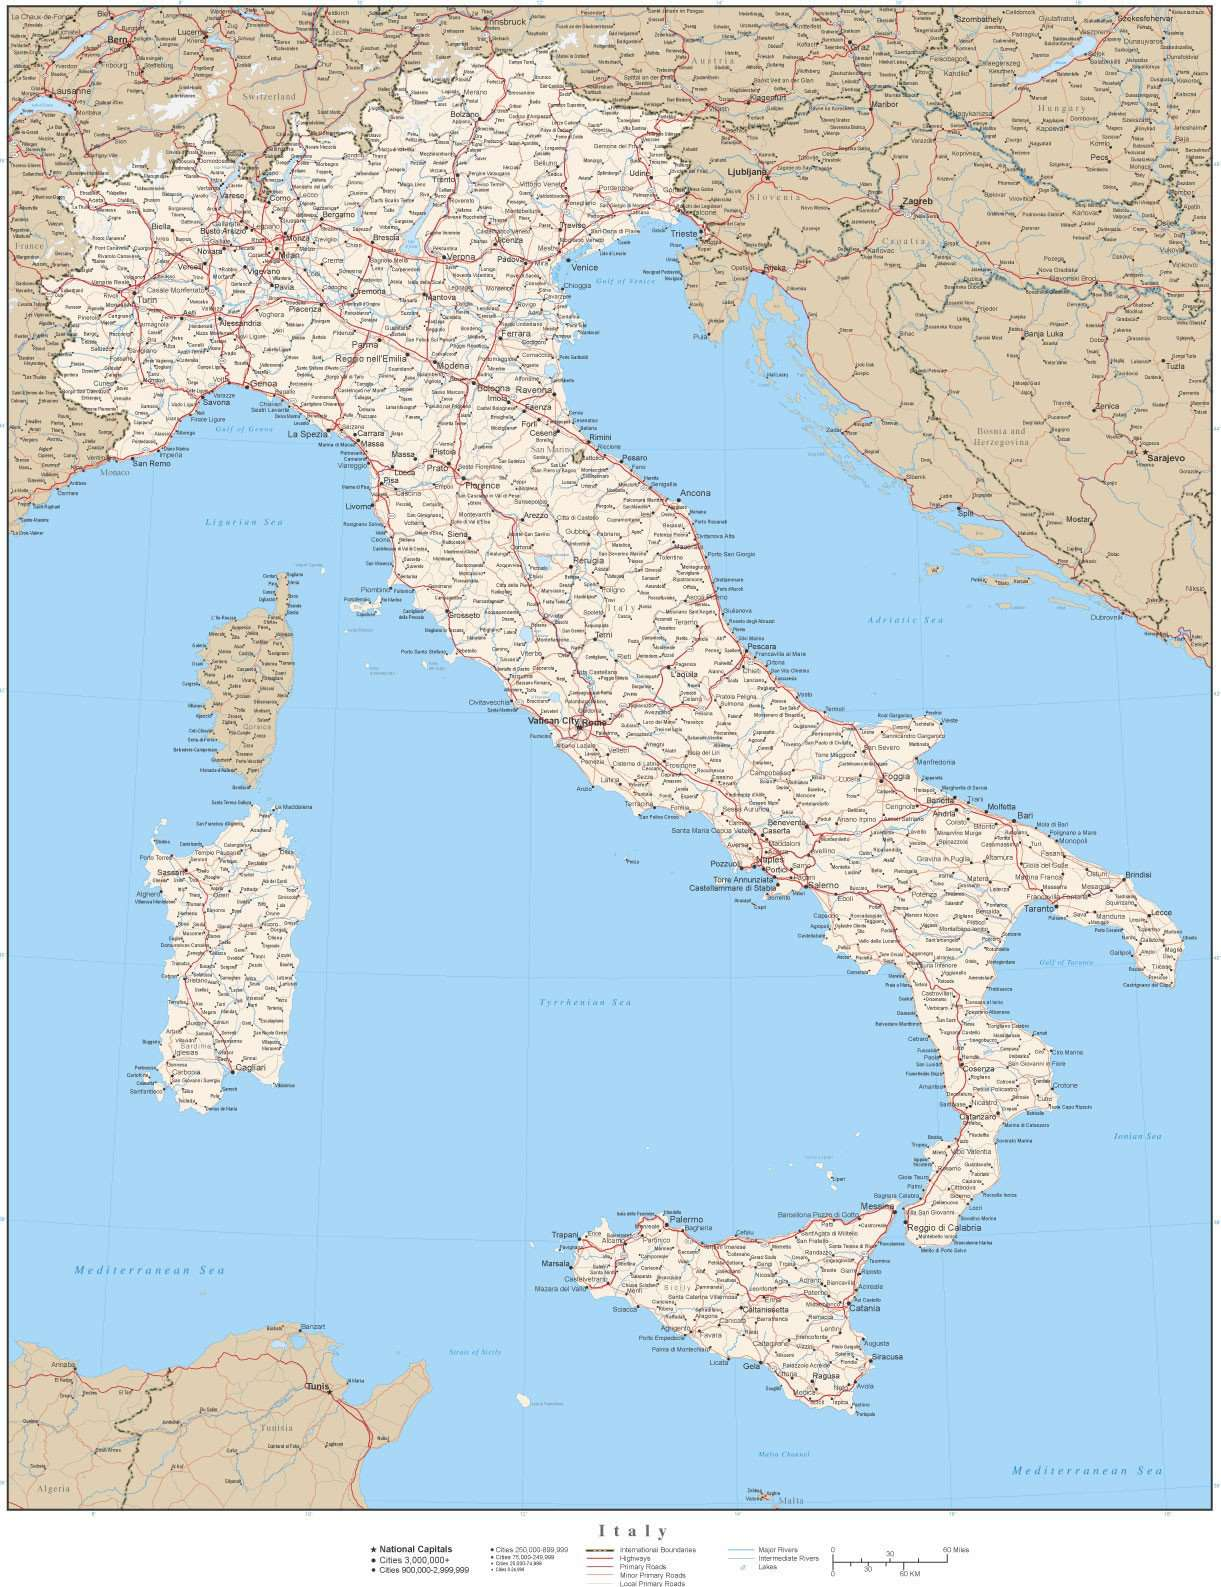 Basic Map Of Italy.Italy Map In Adobe Illustrator Vector Format High Detail Map